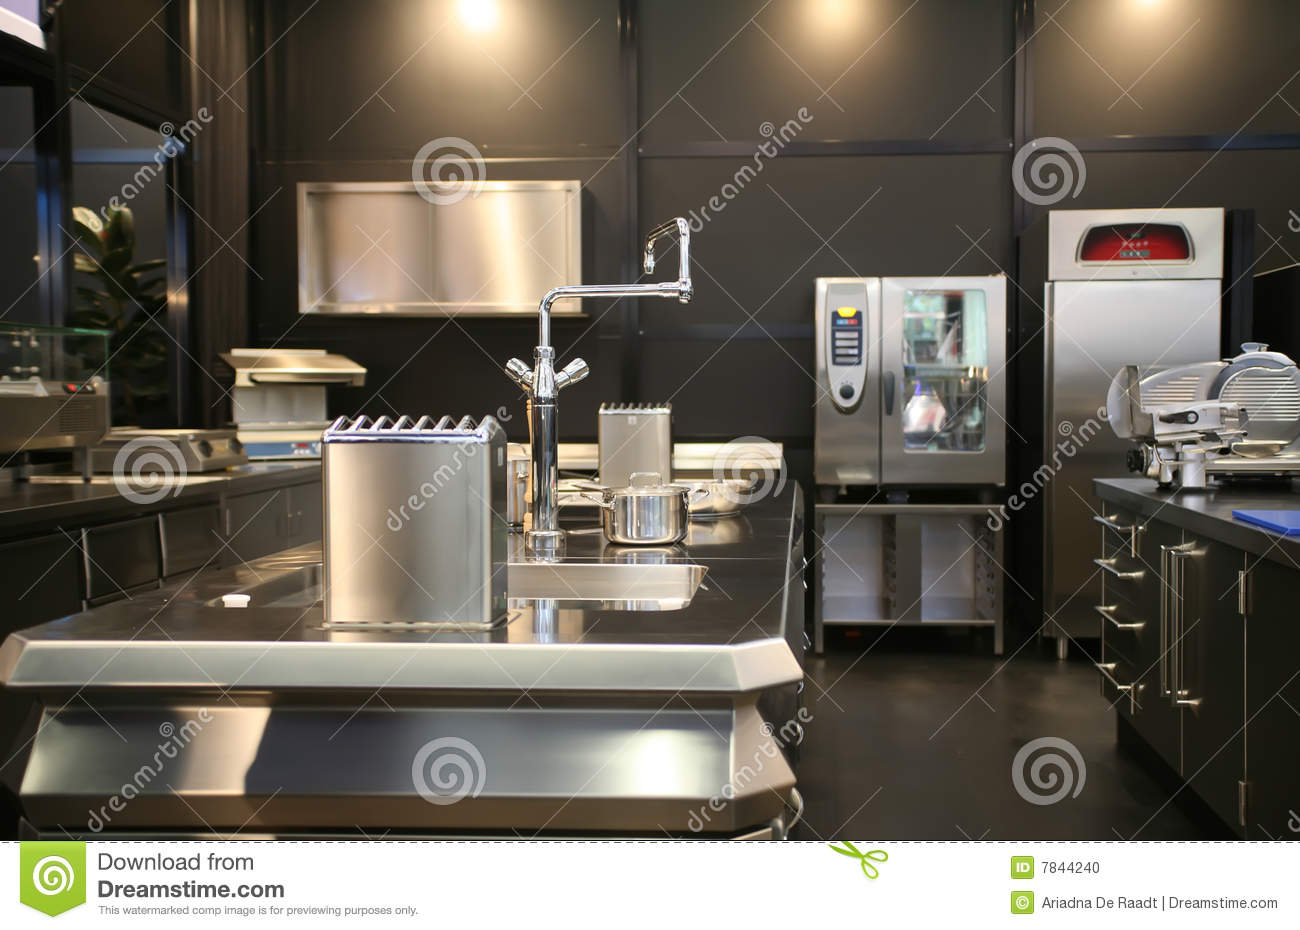 Cuisine industrielle neuve photo stock image 7844240 for Cuisine industrielle restaurant